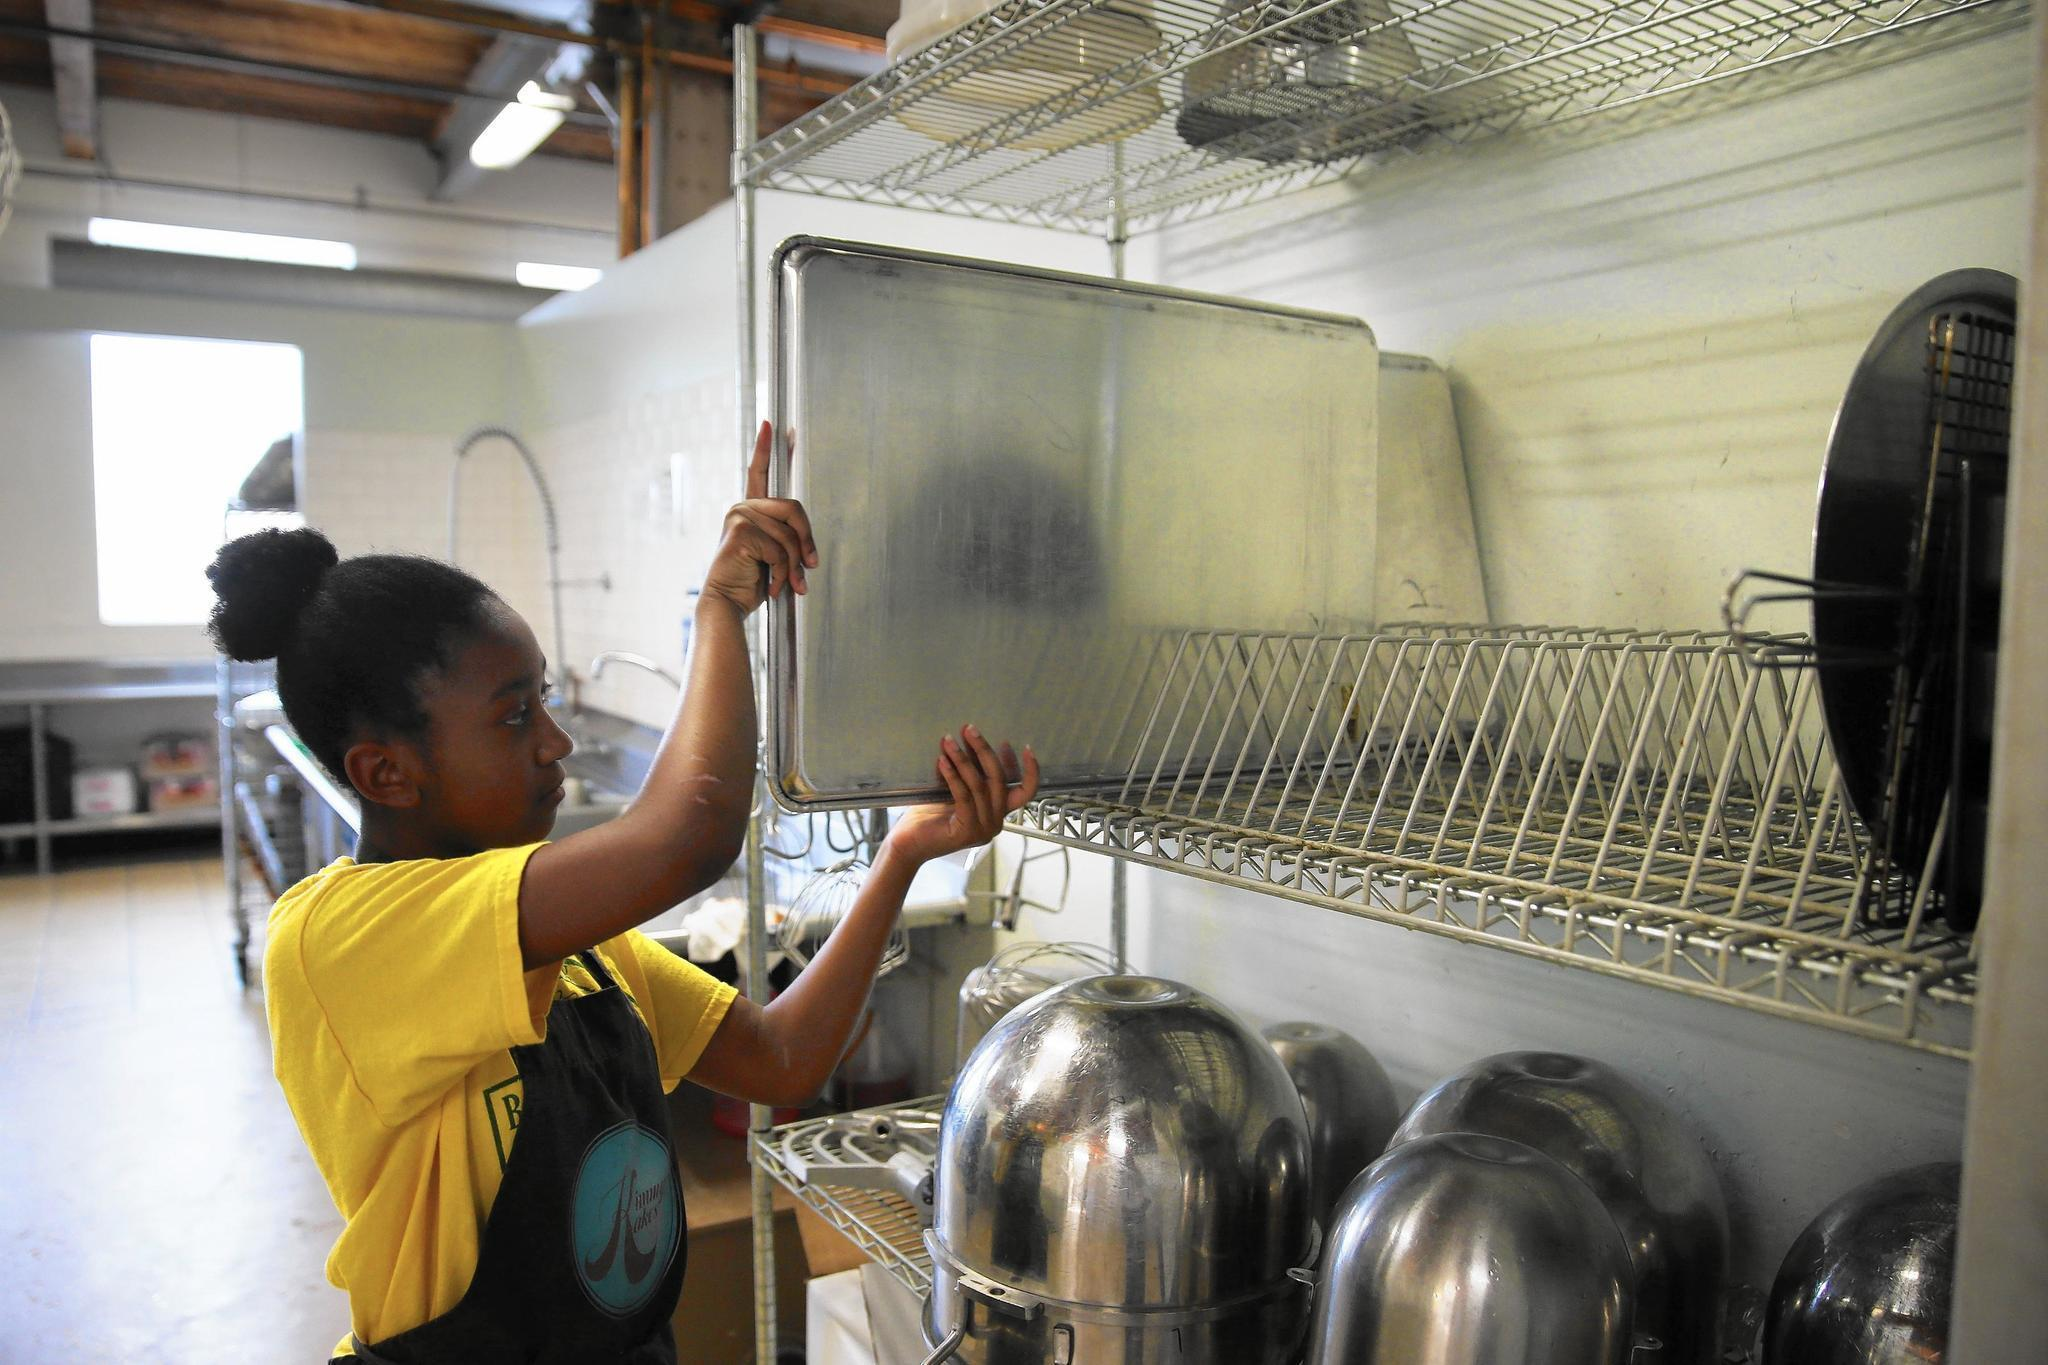 At Kitchen Chicago small food businesses dream big